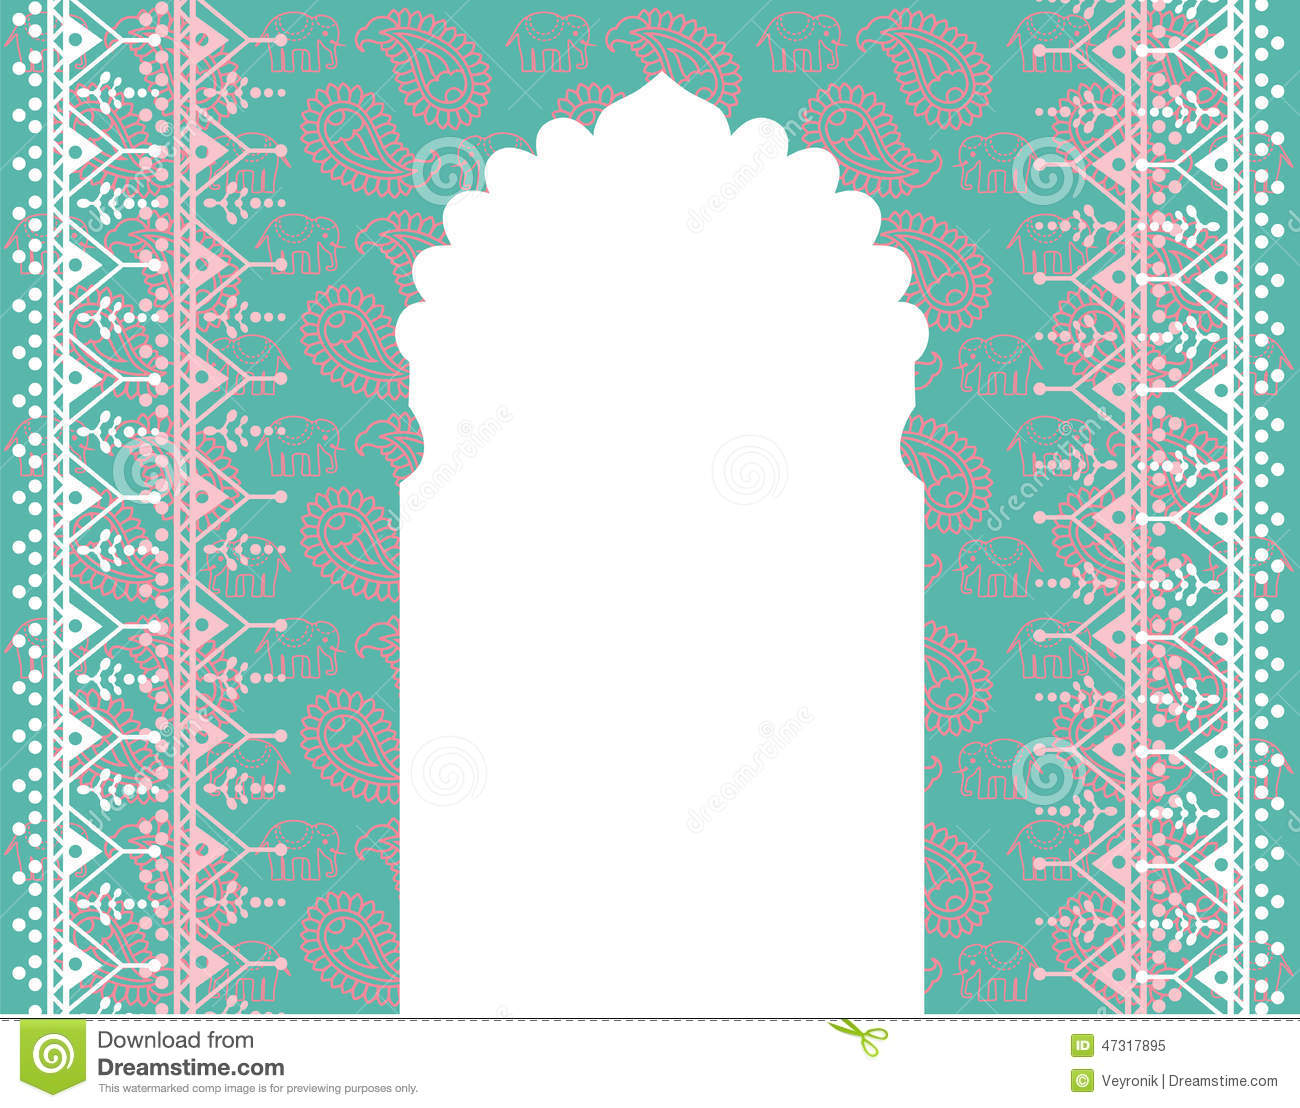 Banni re orientale de porte de temple illustration stock for Fenetre orientale